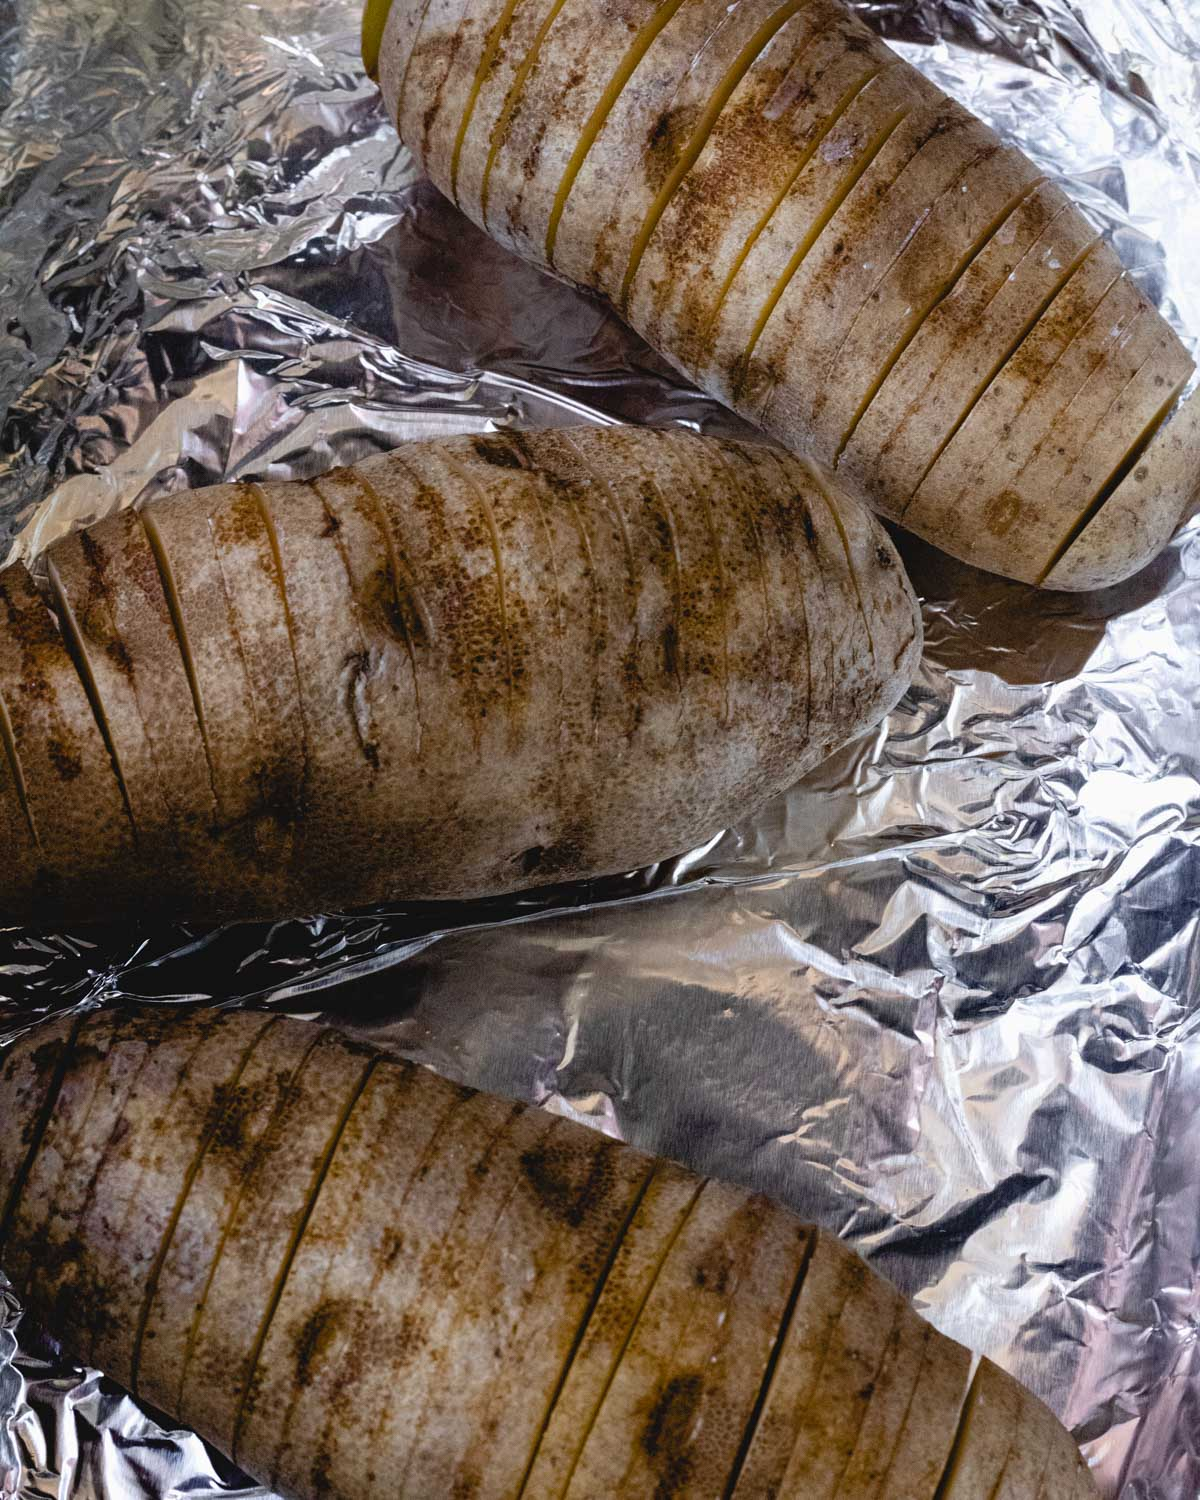 3 sliced potatoes in a foil-lined baking dish.